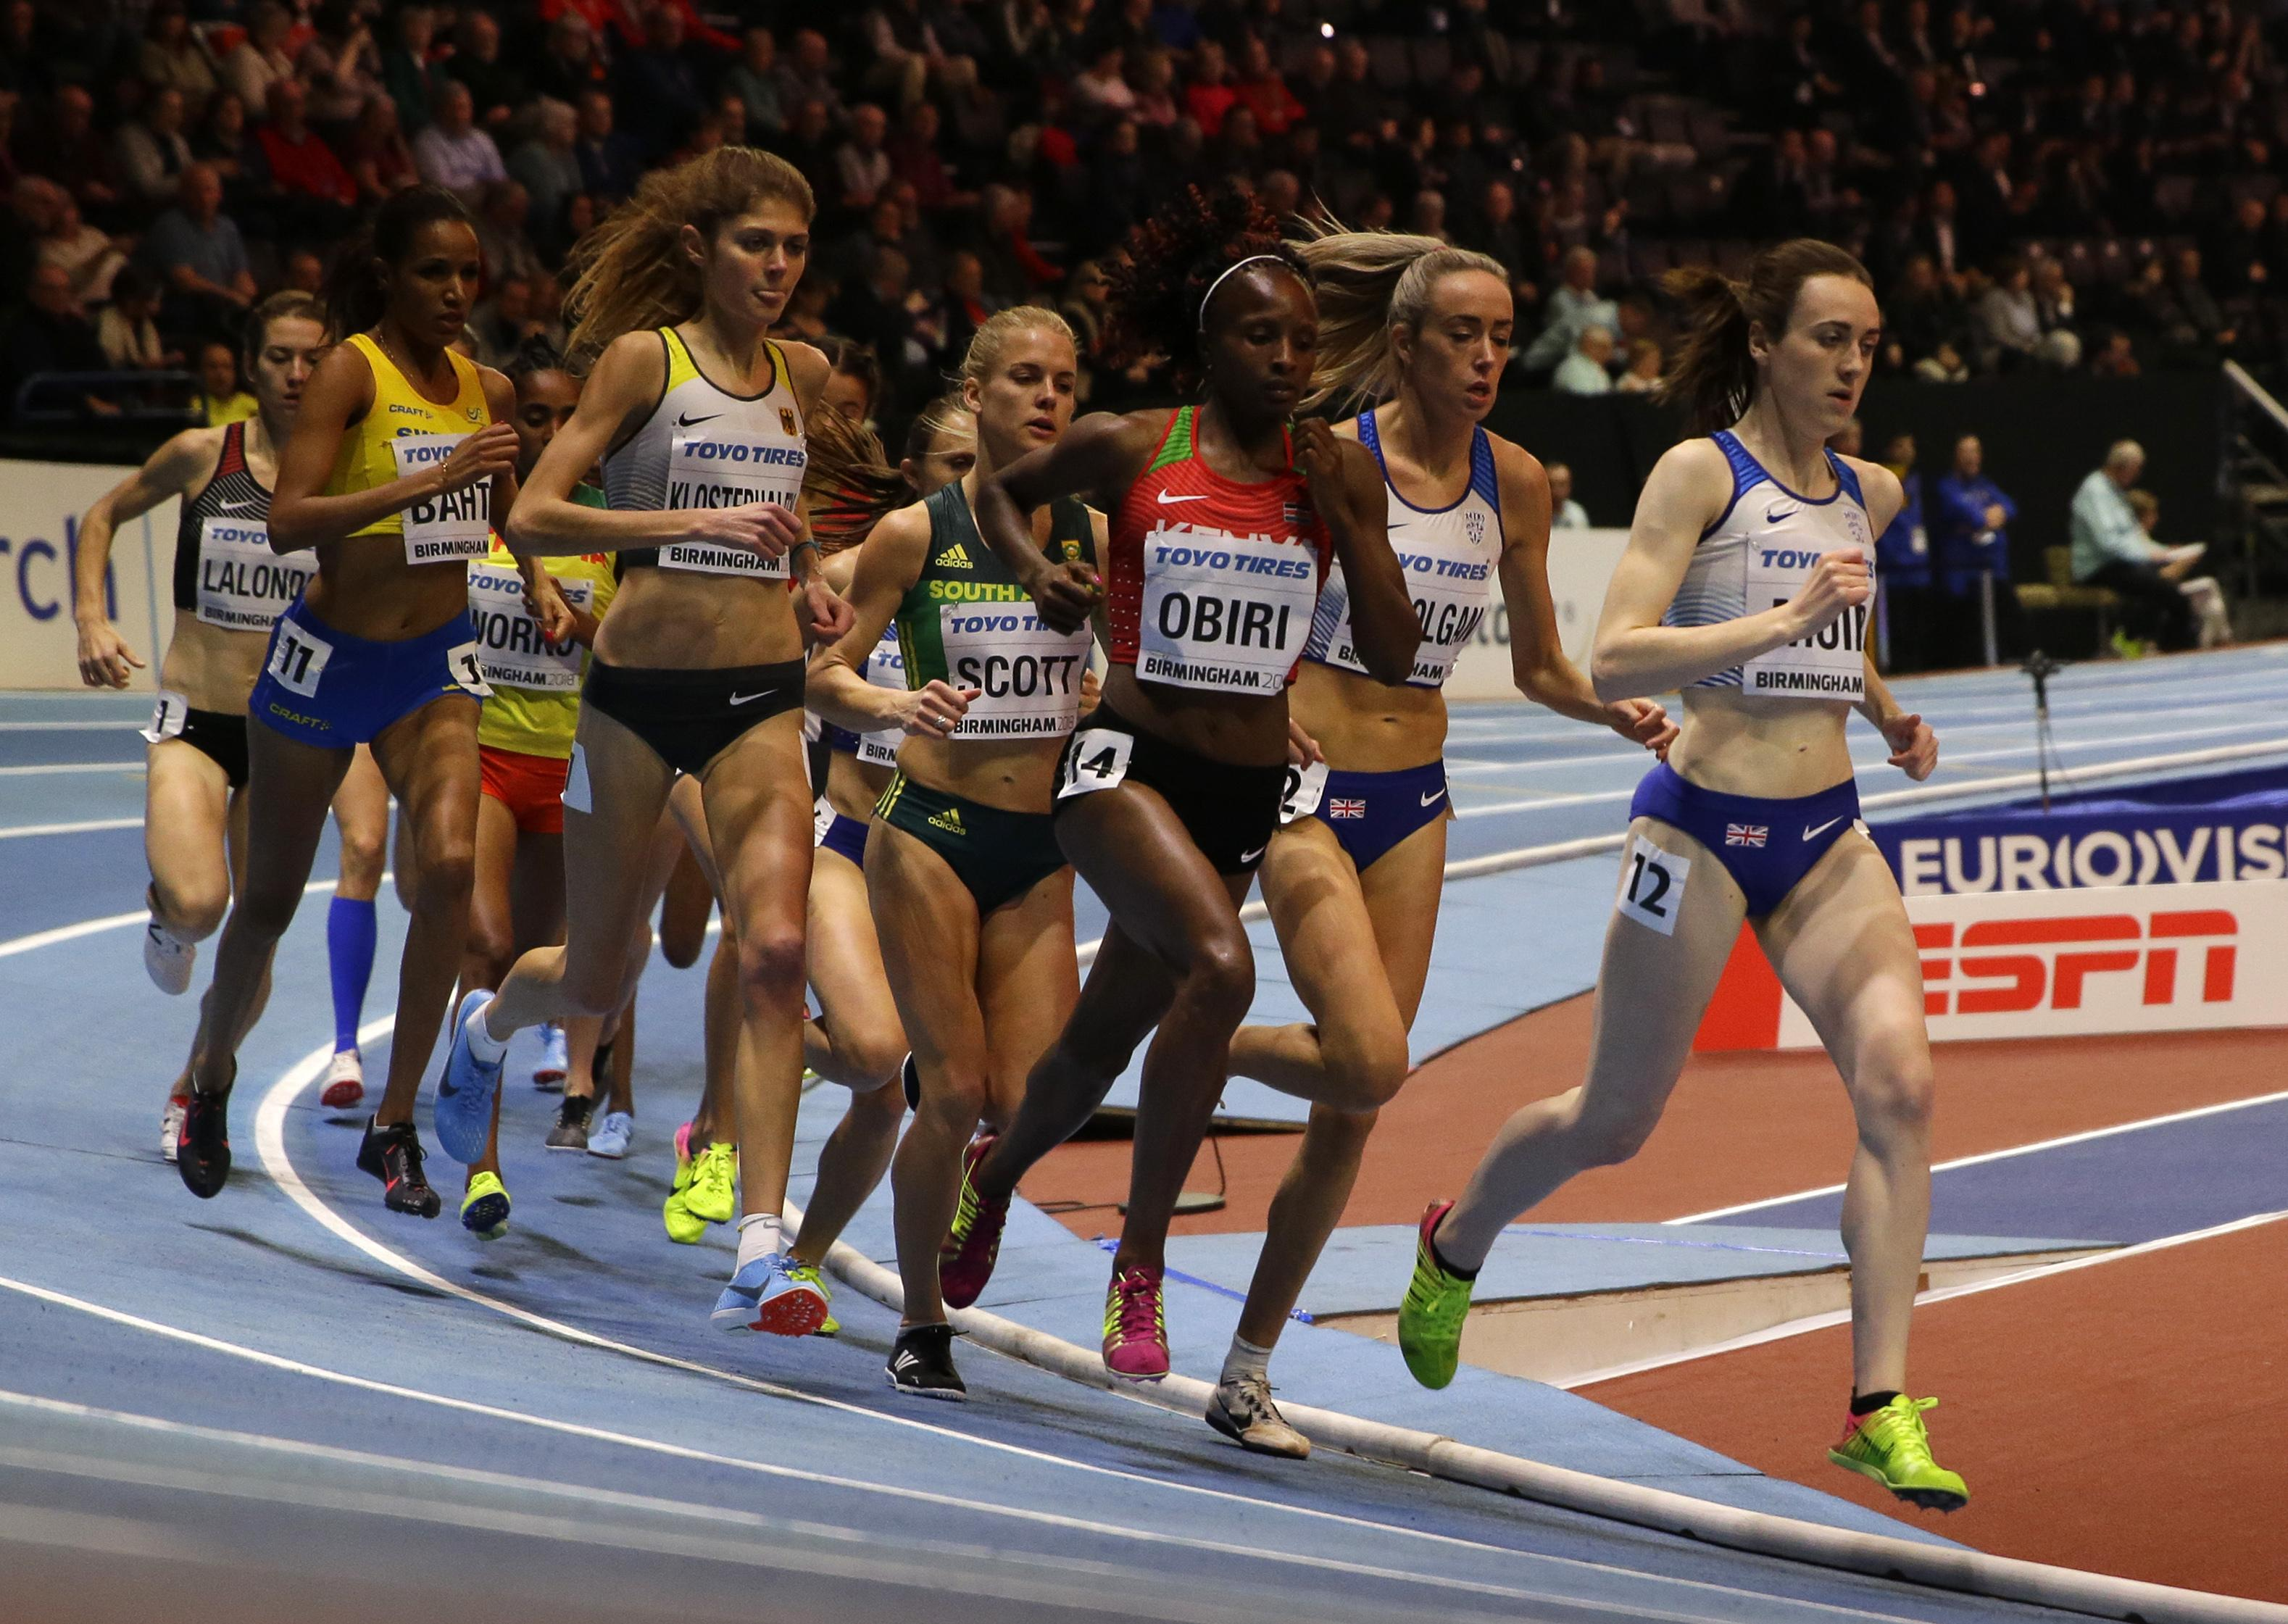 Muir leads out the women's field in the 3,000m final